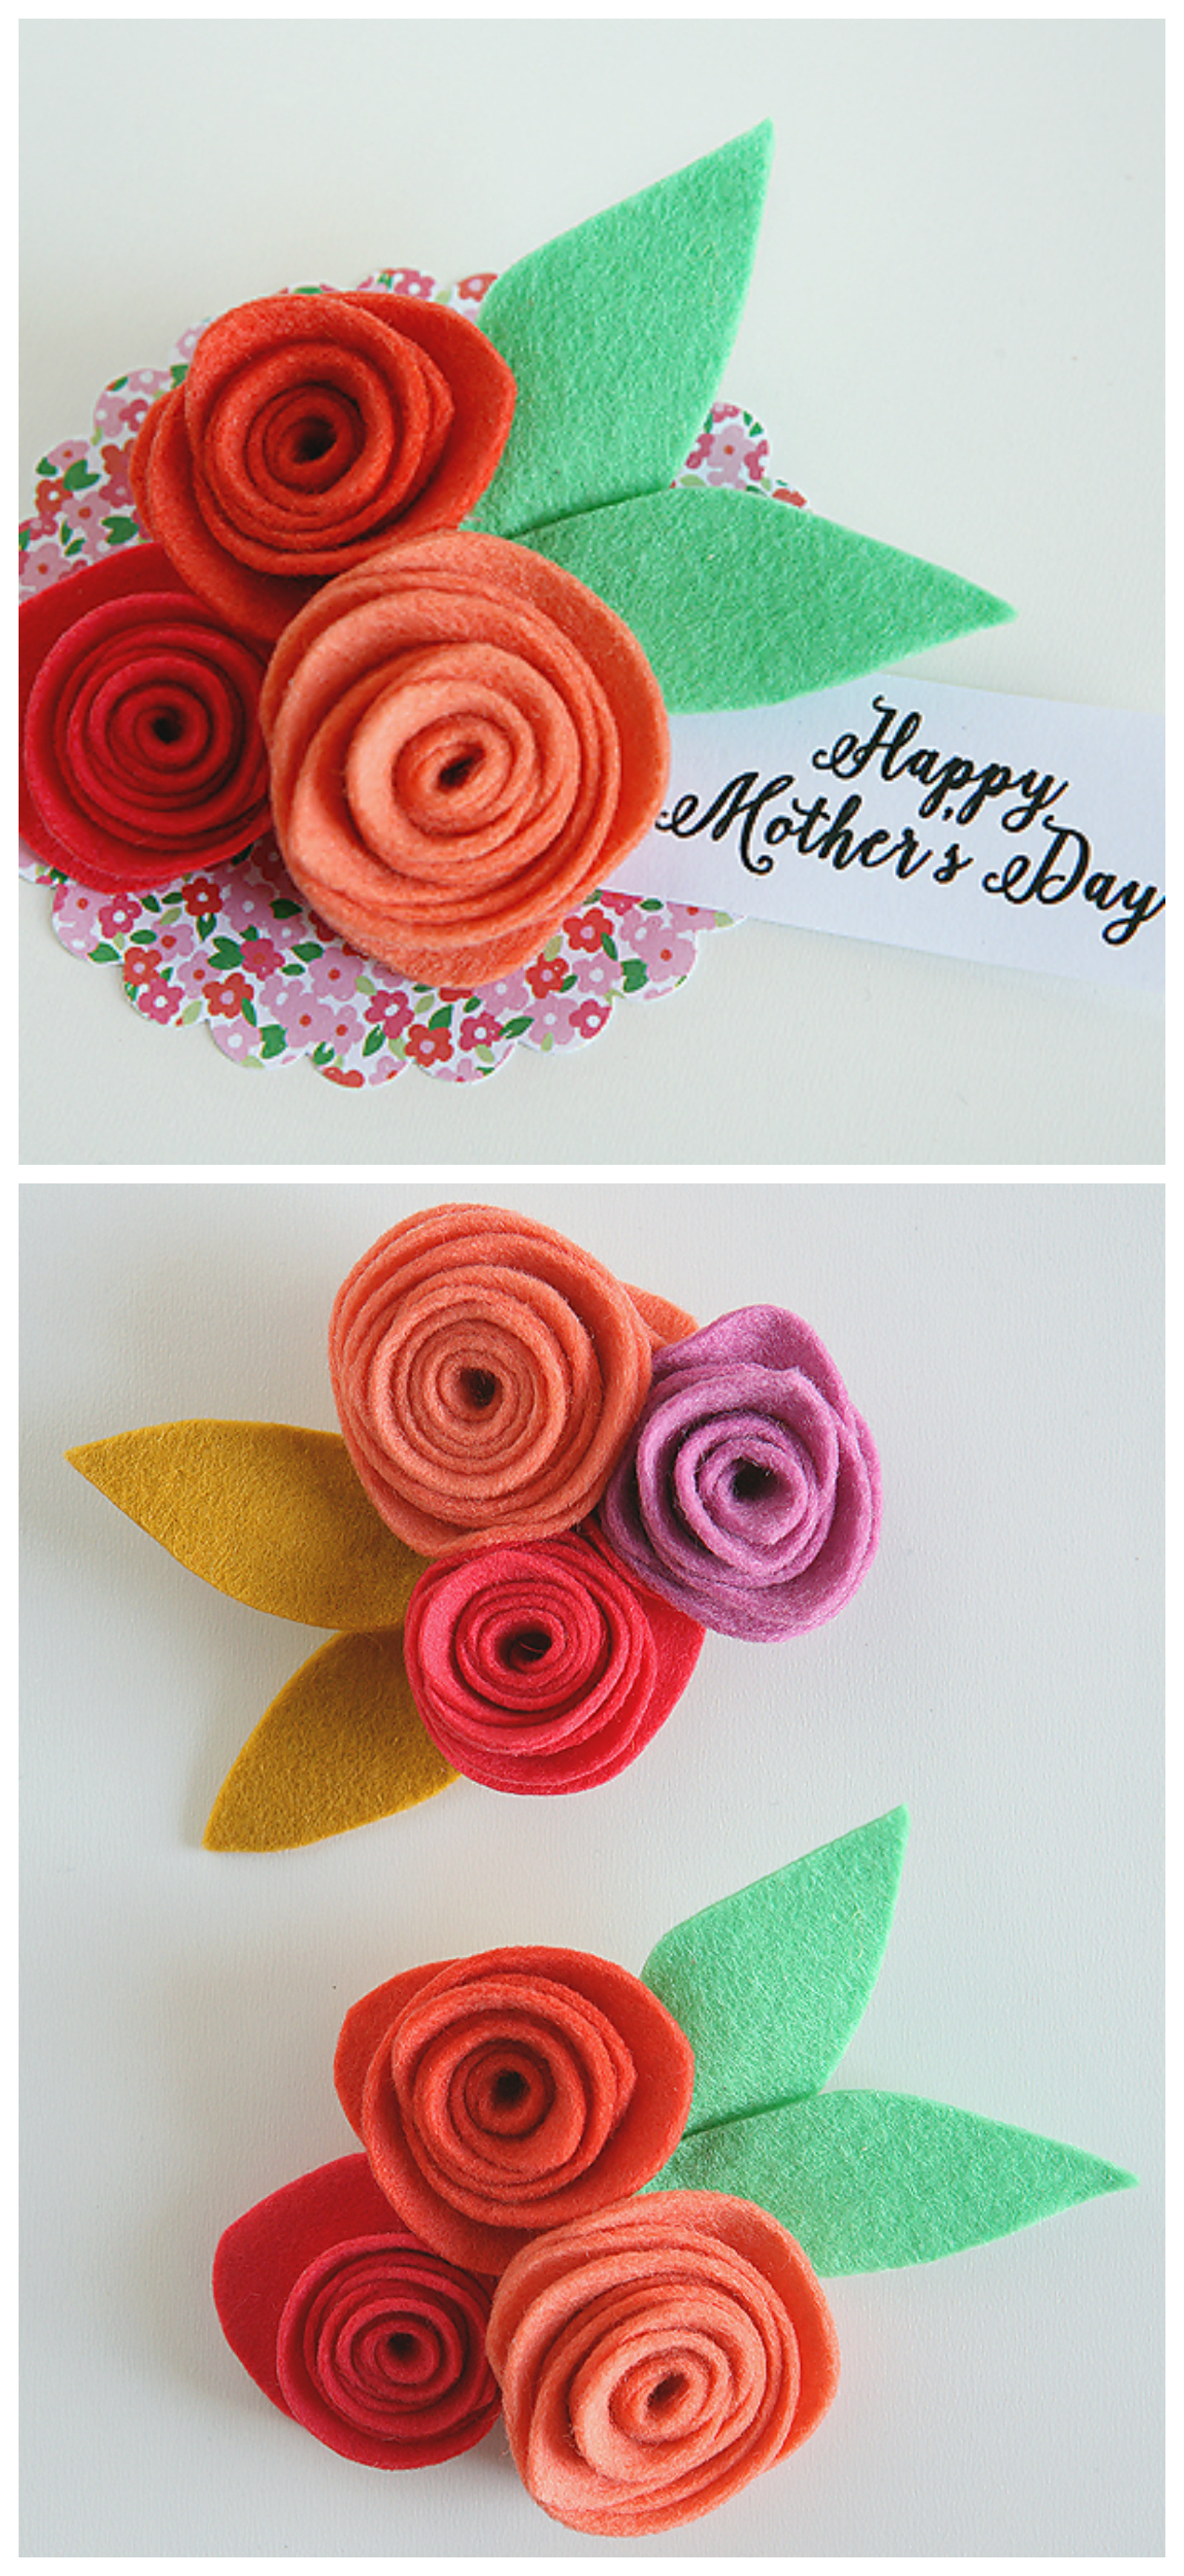 Felt Flower Corsages for Mother's Day | Includes instructions and free printable Happy Mother's Day tag.